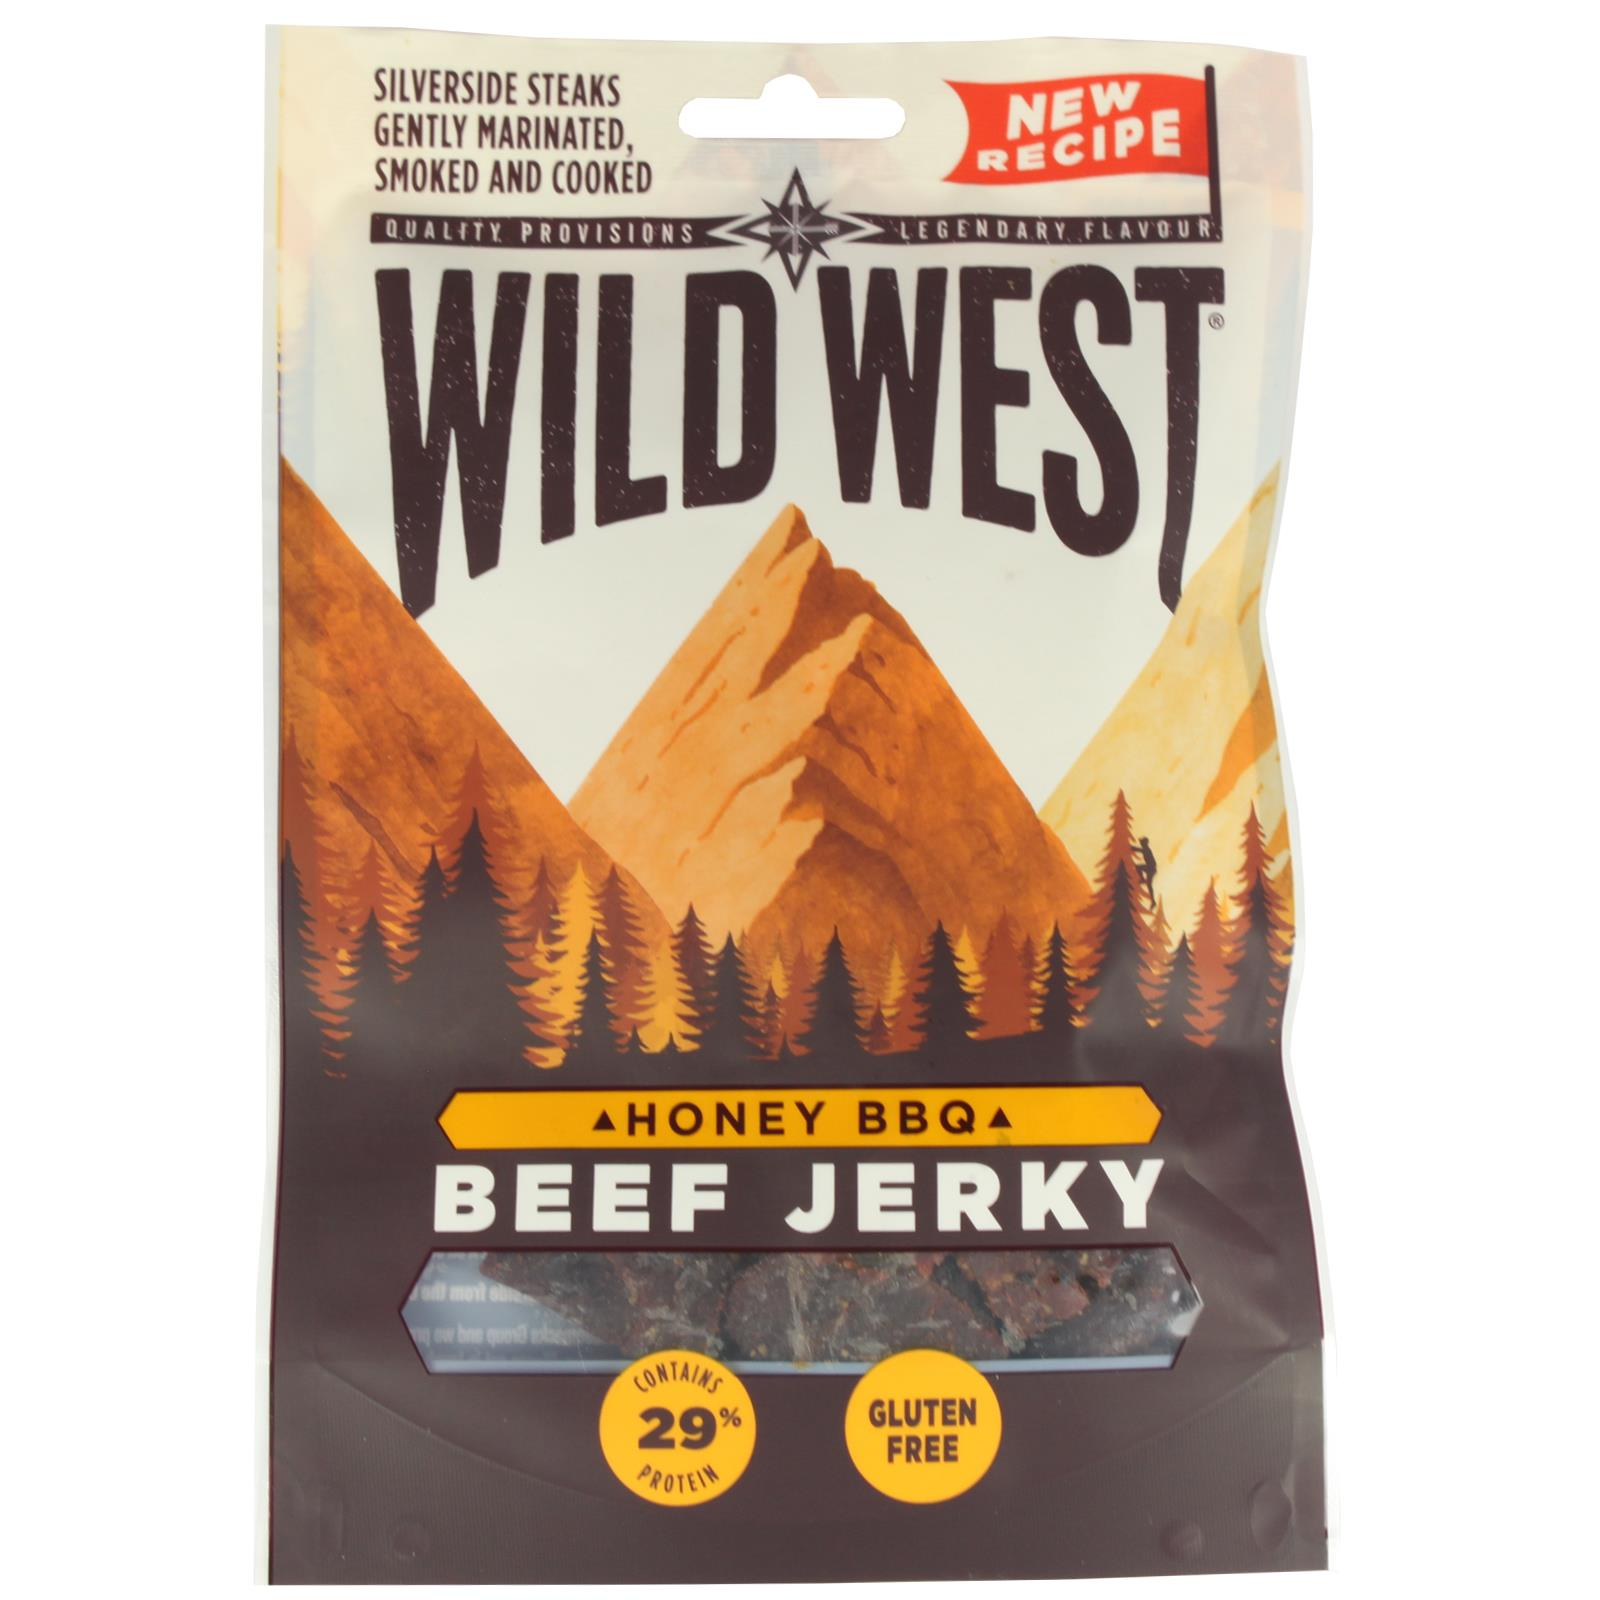 Wild-West-Beef-Jerky-All-Flavours-Mixed-Packs-Gluten-Free-High-Protein-Snack miniatura 6